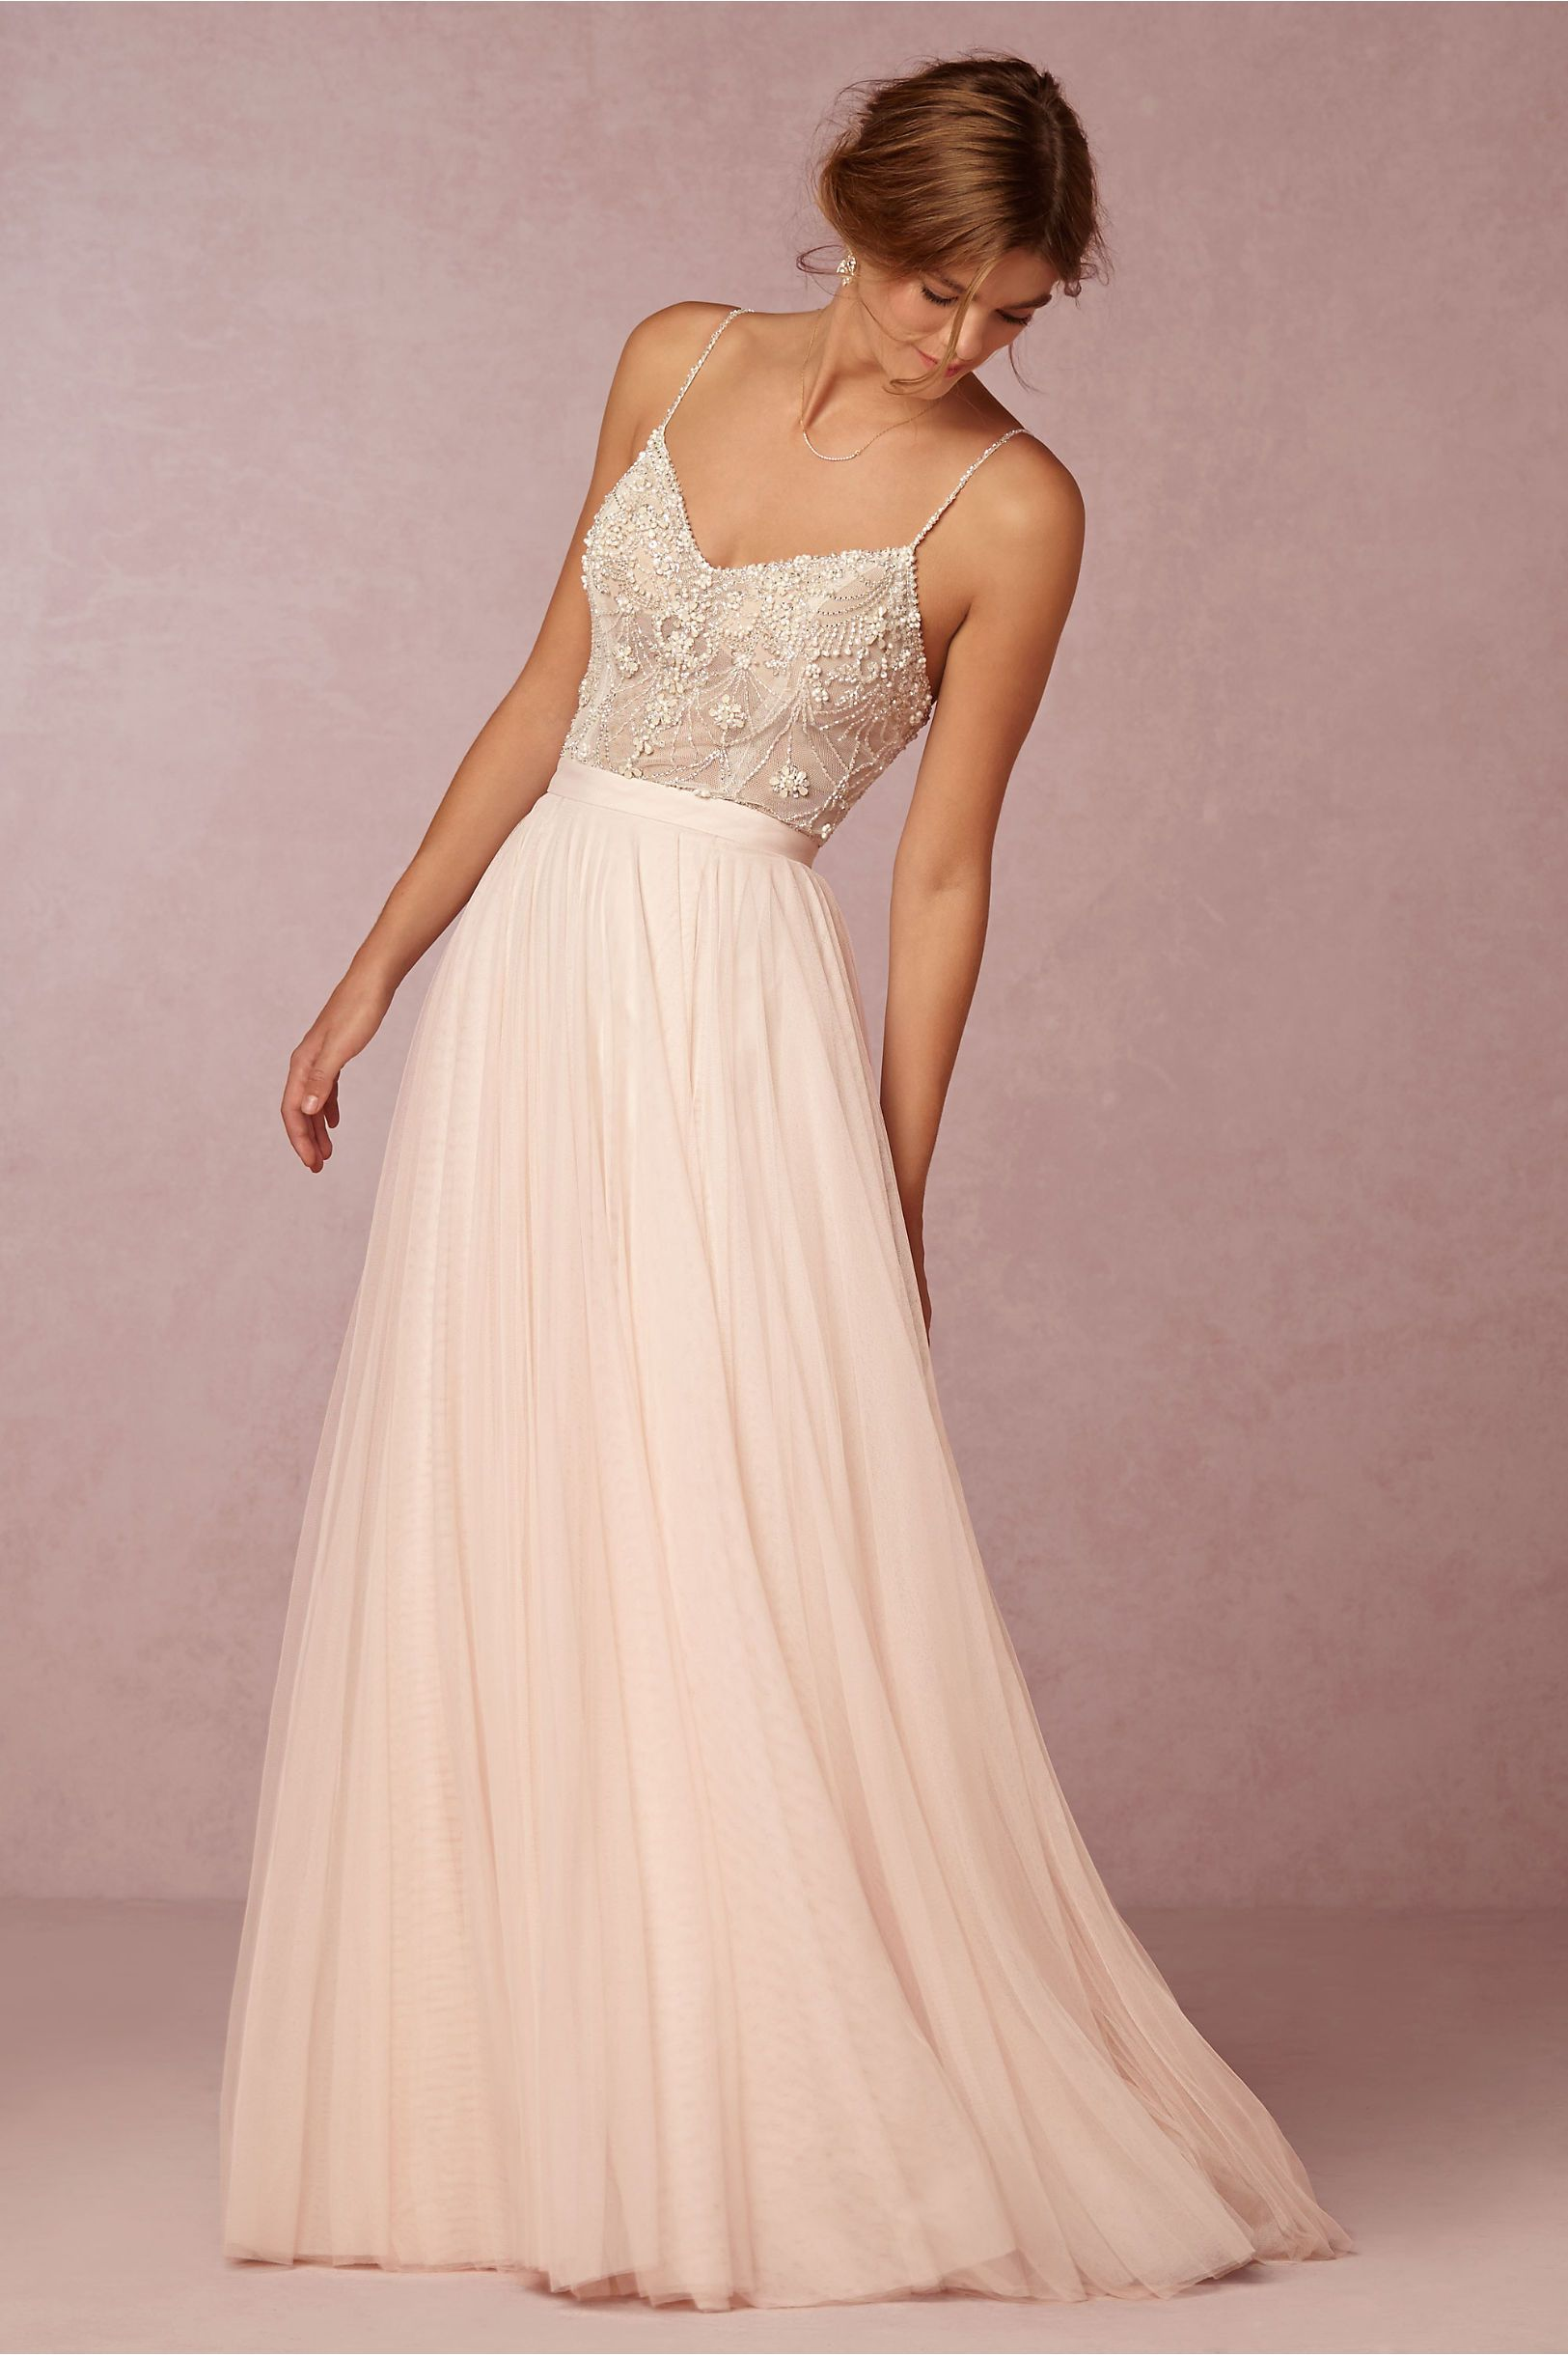 15 utterly chic sophisticated wedding dresses for the refined 15 utterly chic sophisticated wedding dresses for the refined romantic ombrellifo Choice Image